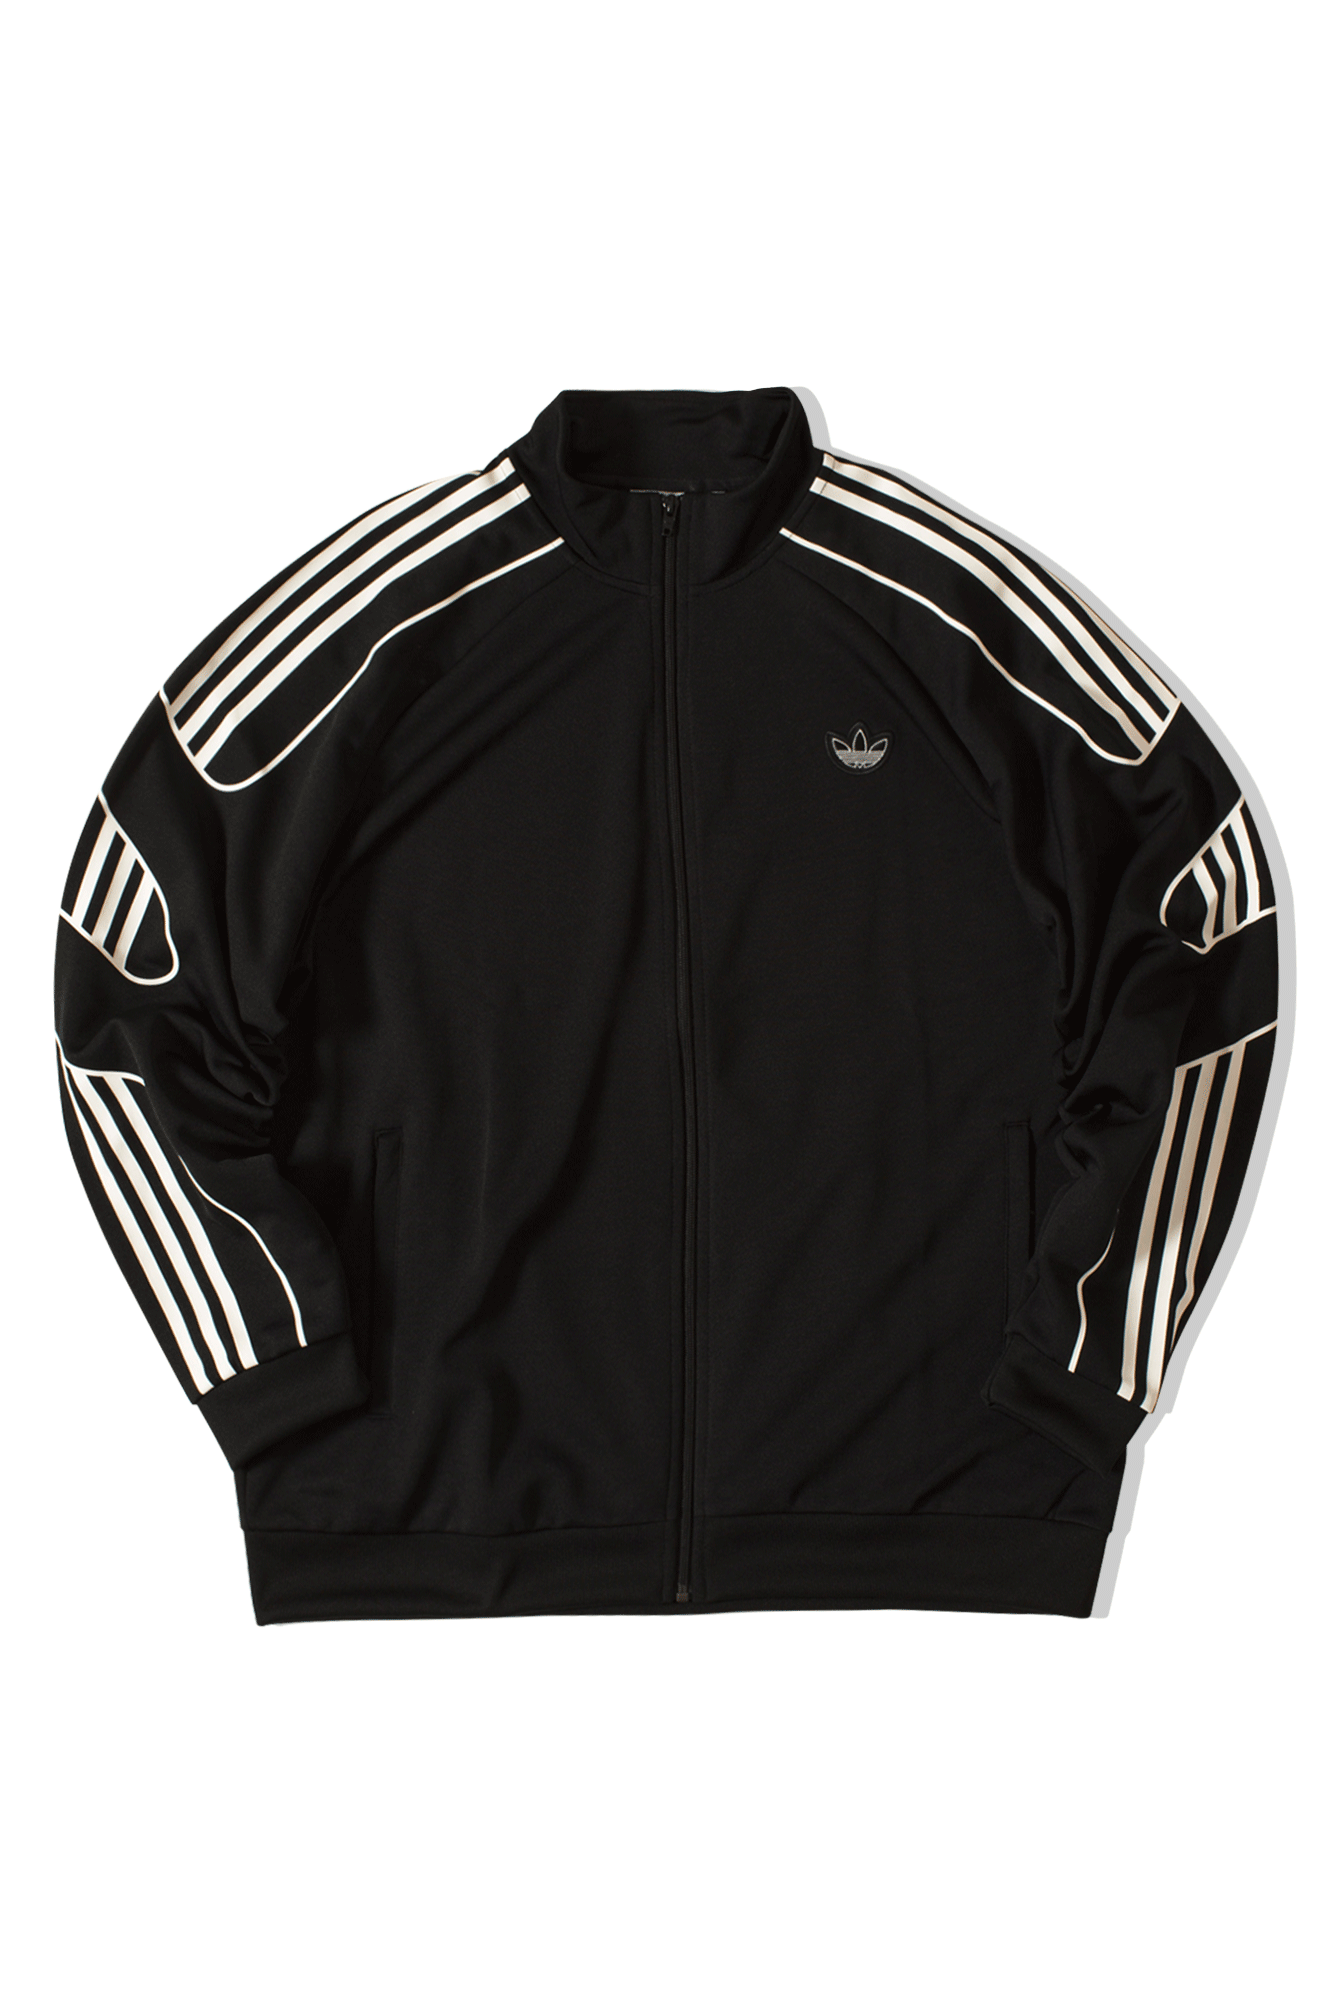 Adidas Originals Coats & Jackets Fstrike TT Jacket Black ED7209#000#Black#S - One Block Down